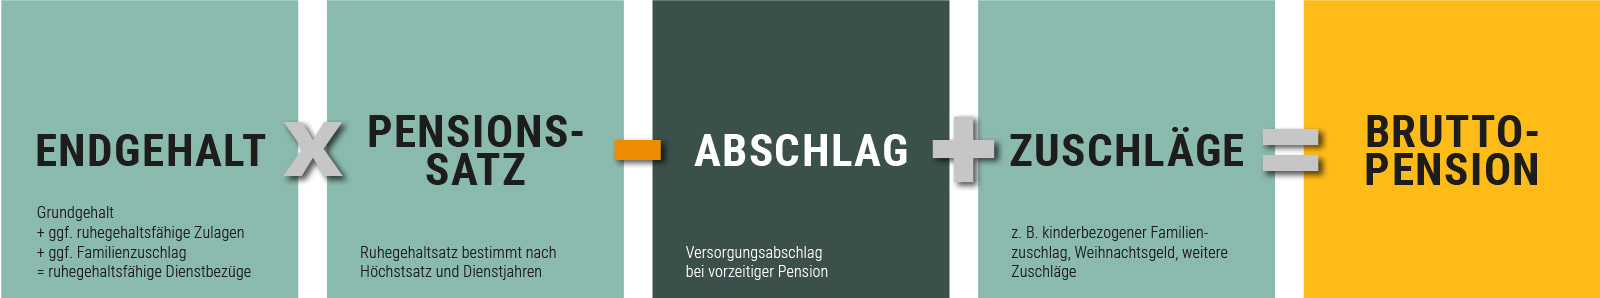 berechnung pension